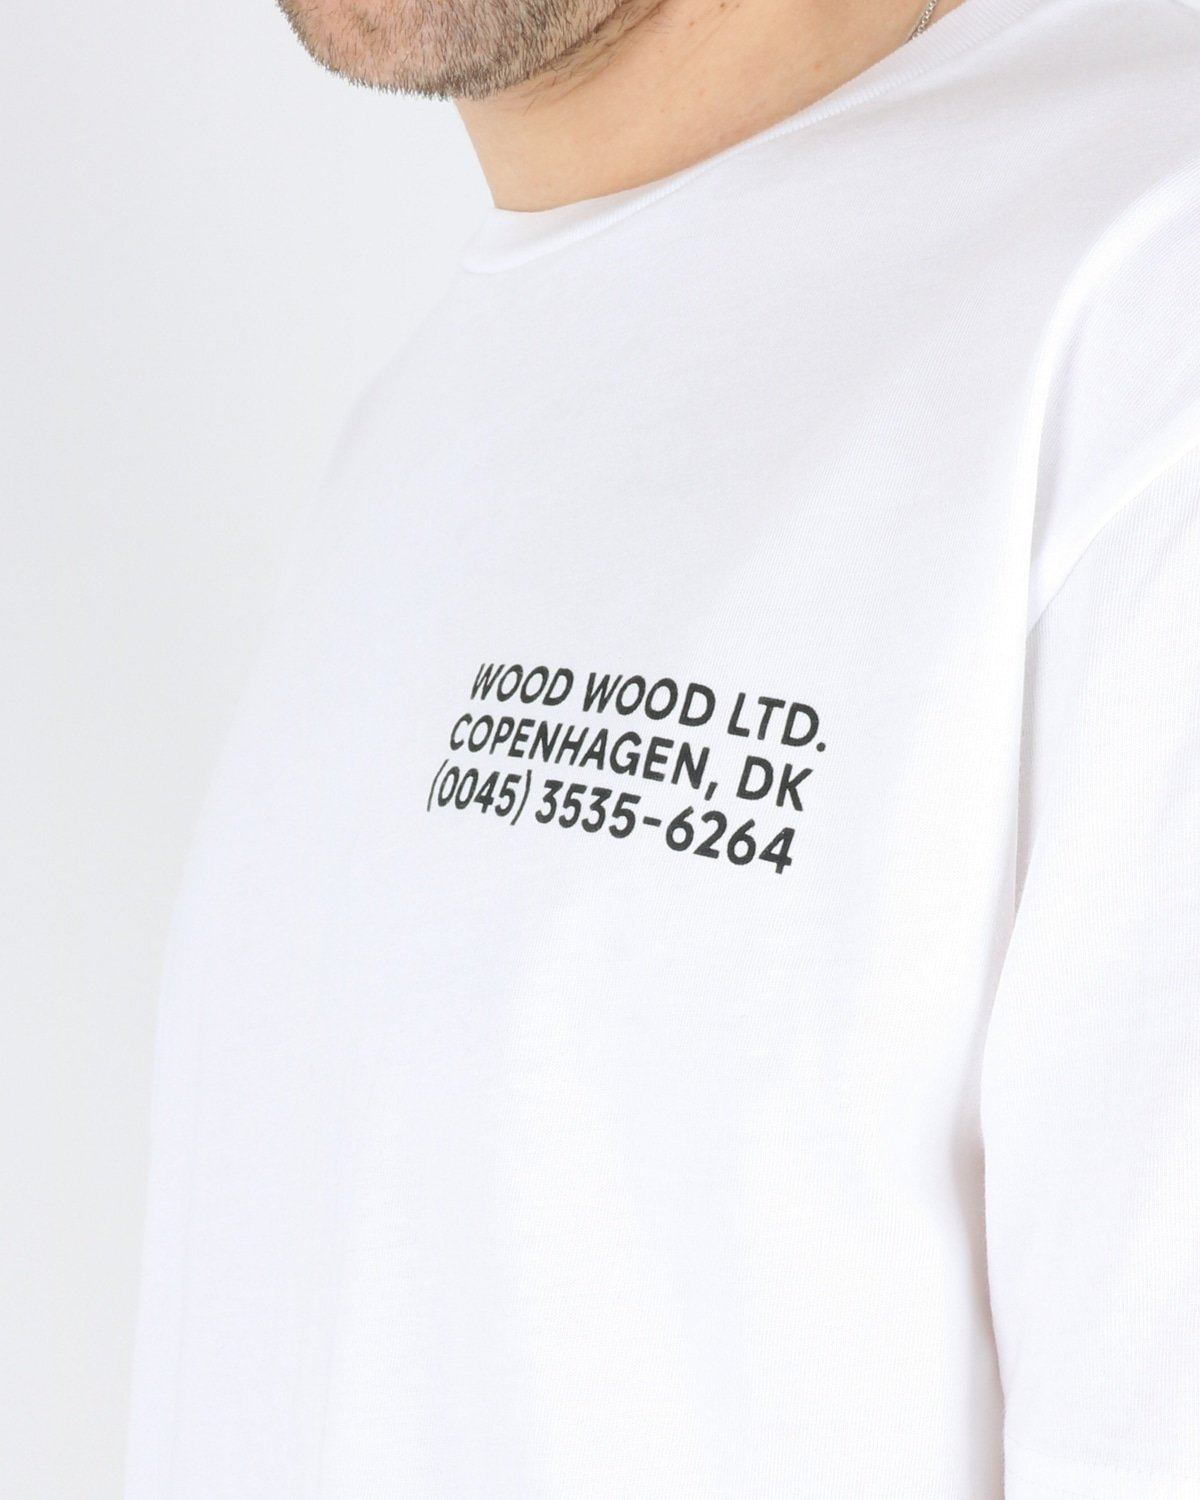 wood wood_info t-shirt_white_4_4